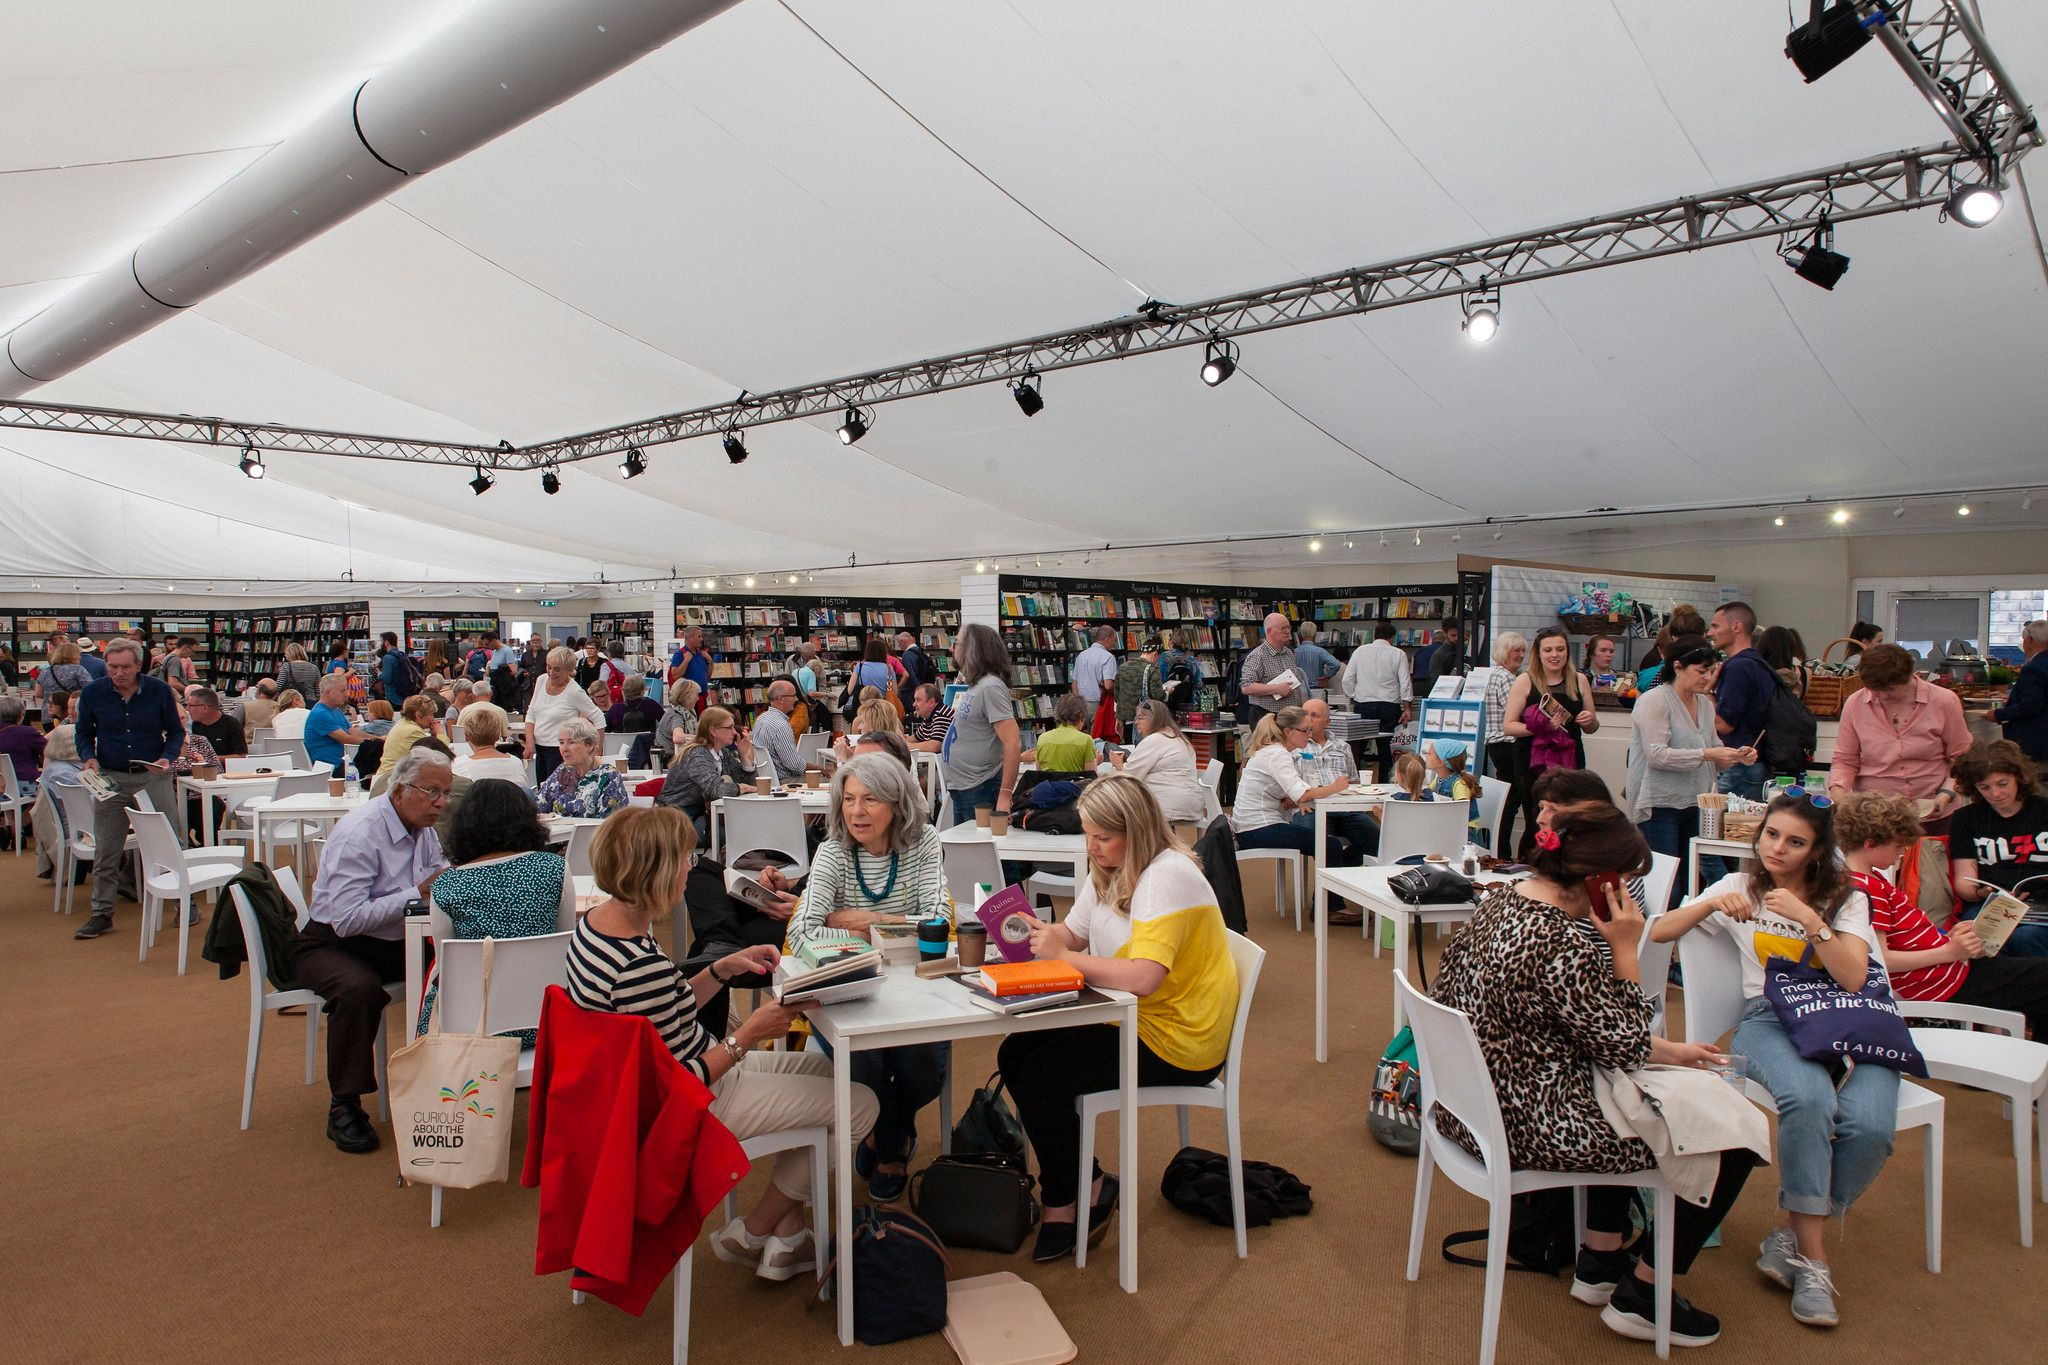 Photo shows people sat at tables in a bookshop cafe